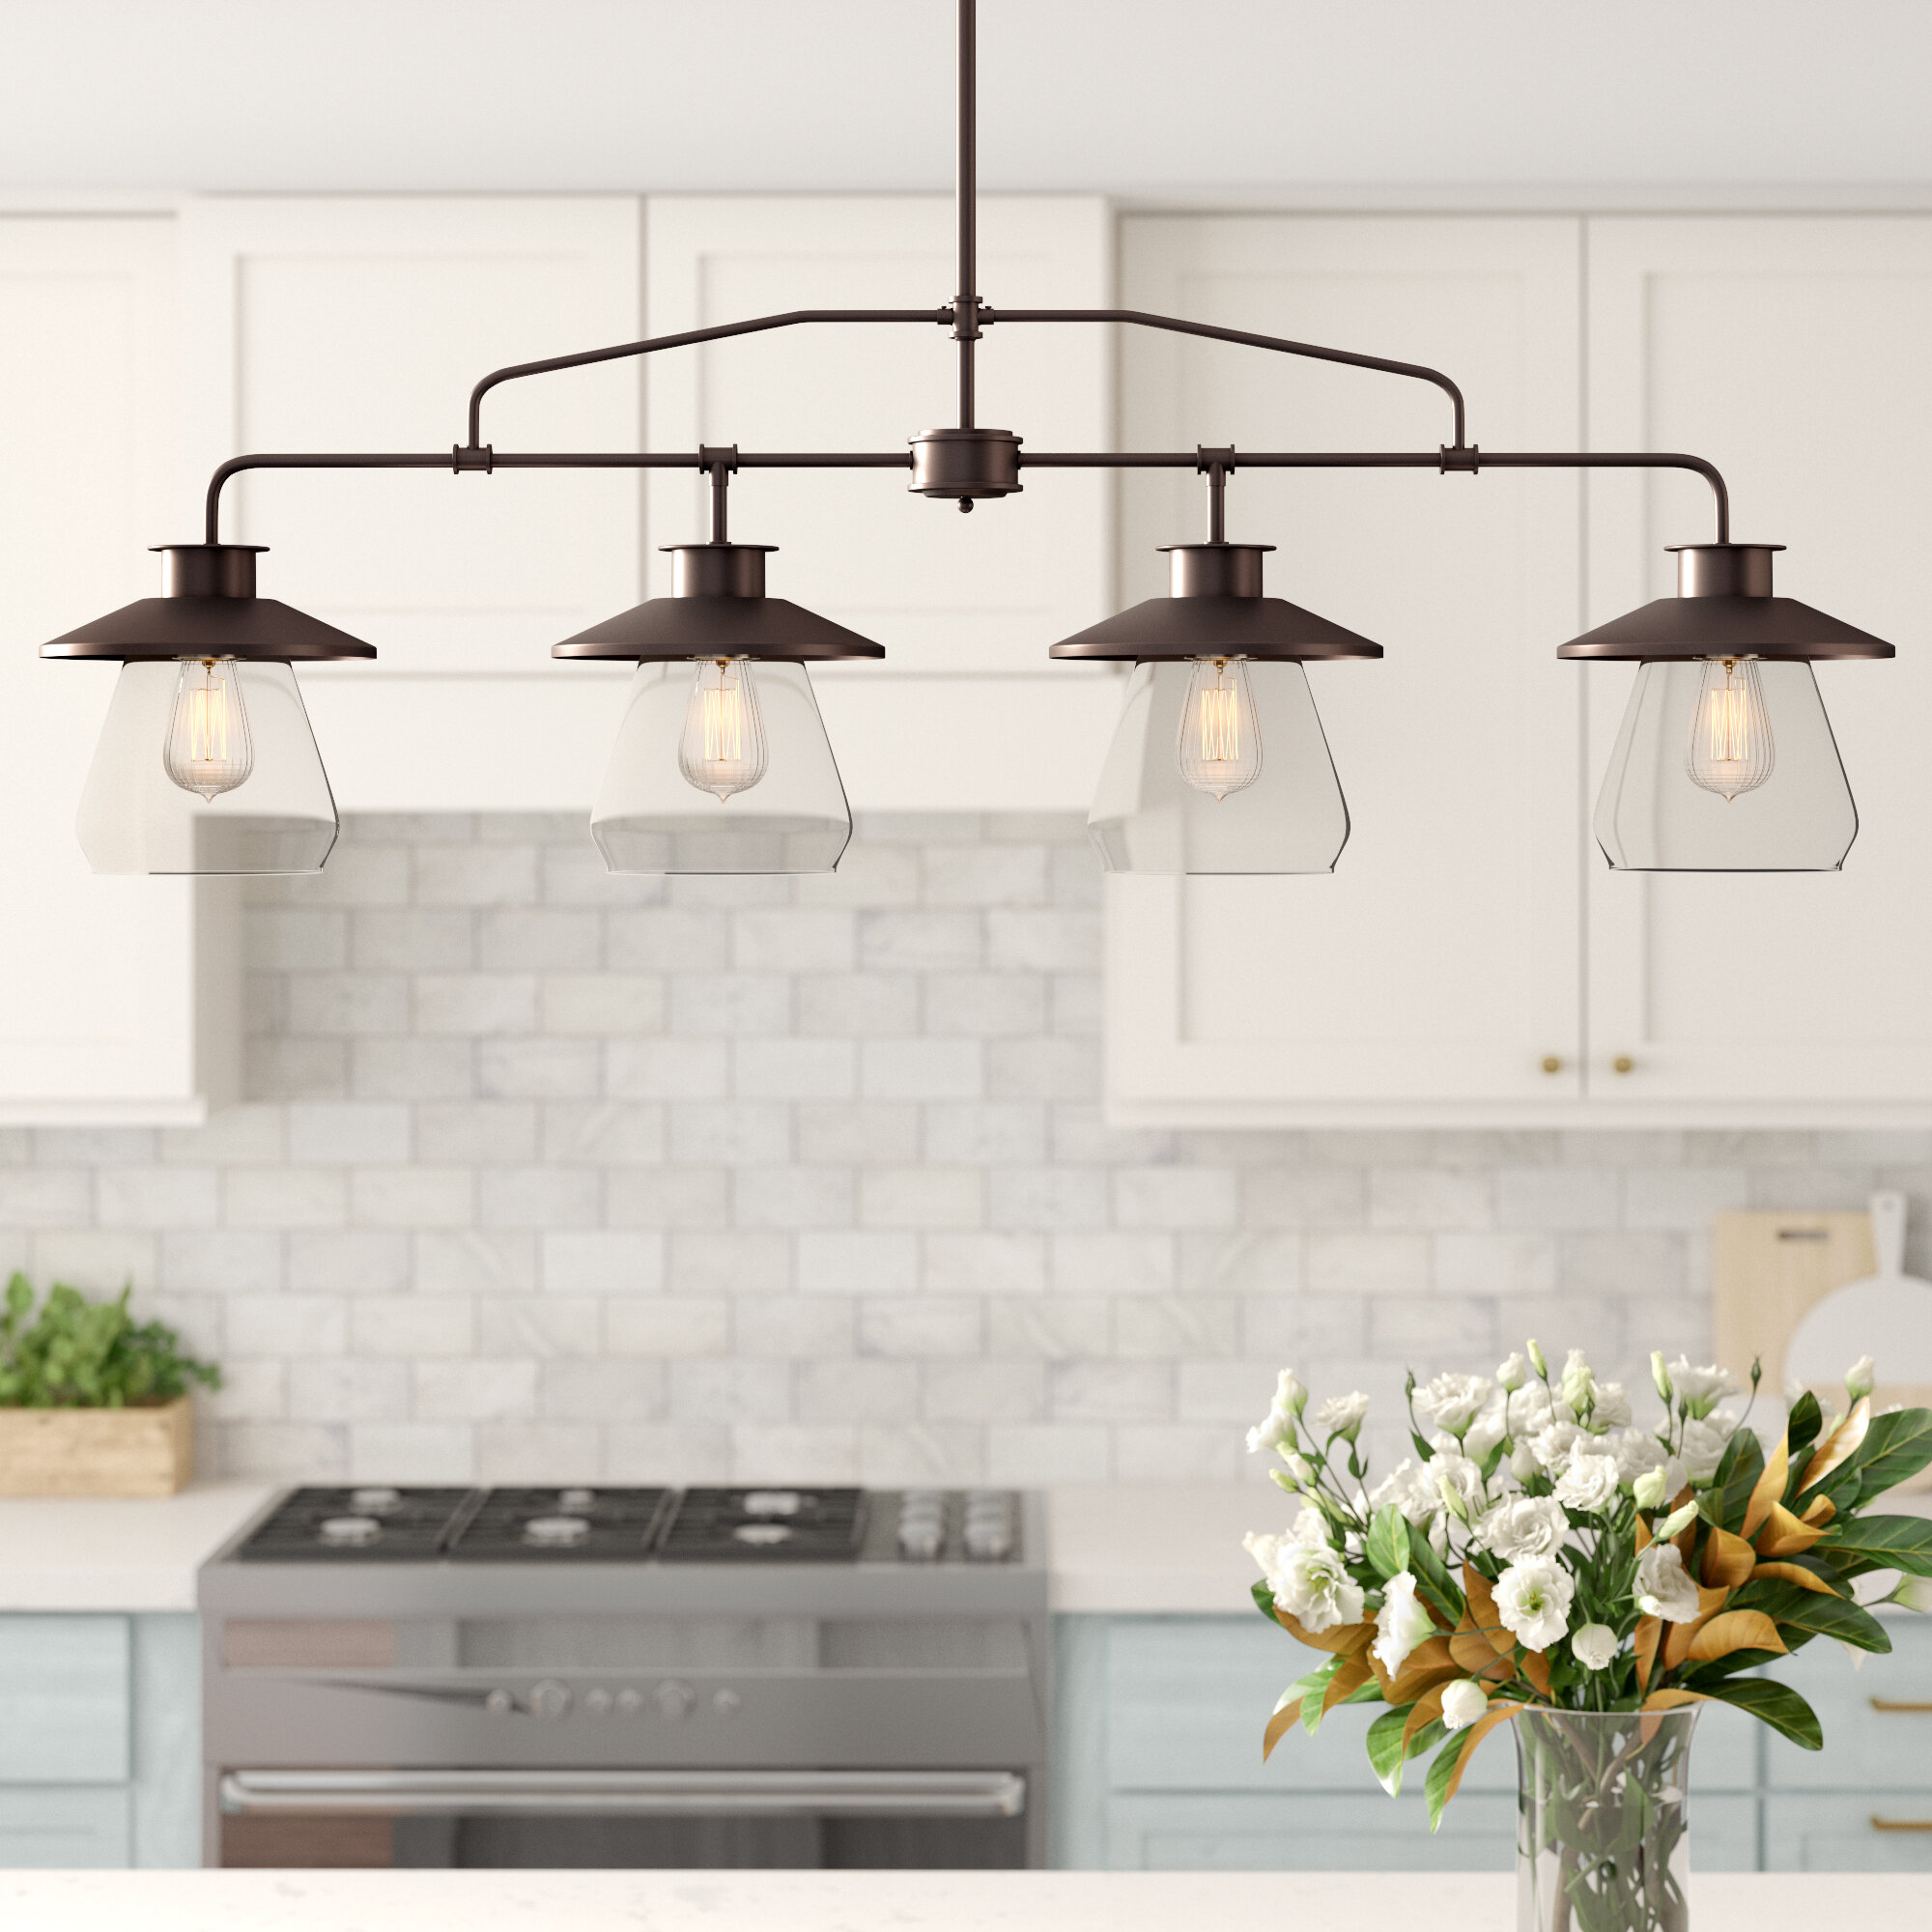 Oil Rubbed Bronze Rustic Kitchen Island Lighting You Ll Love In 2021 Wayfair